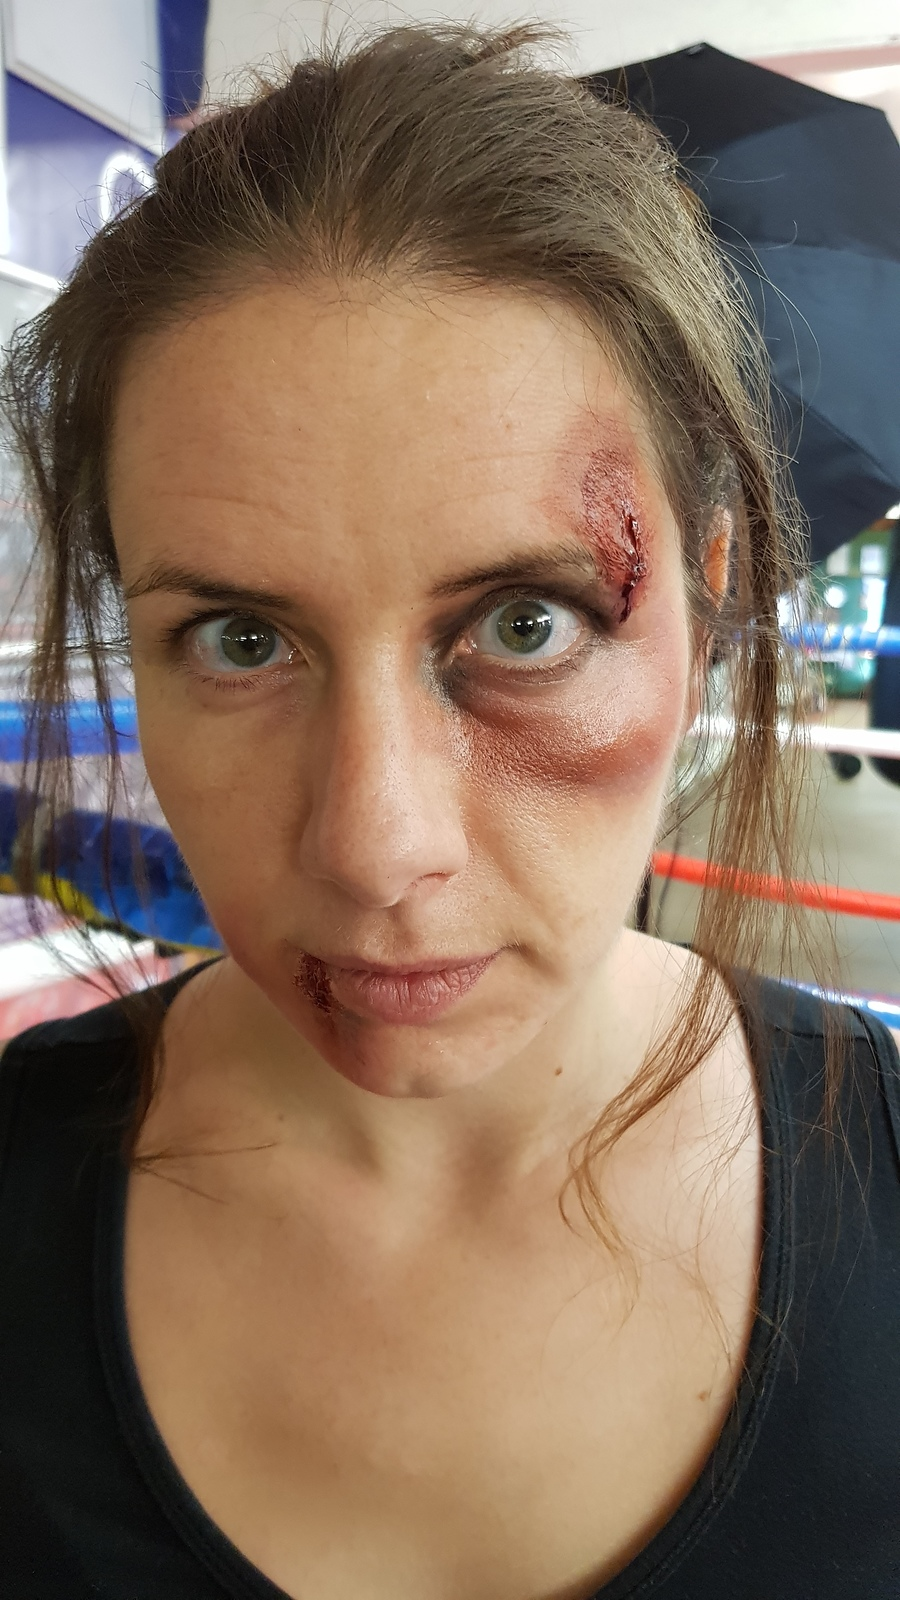 sfx boxing ring makeup / Makeup by JStan / Uploaded 23rd January 2020 @ 09:02 PM